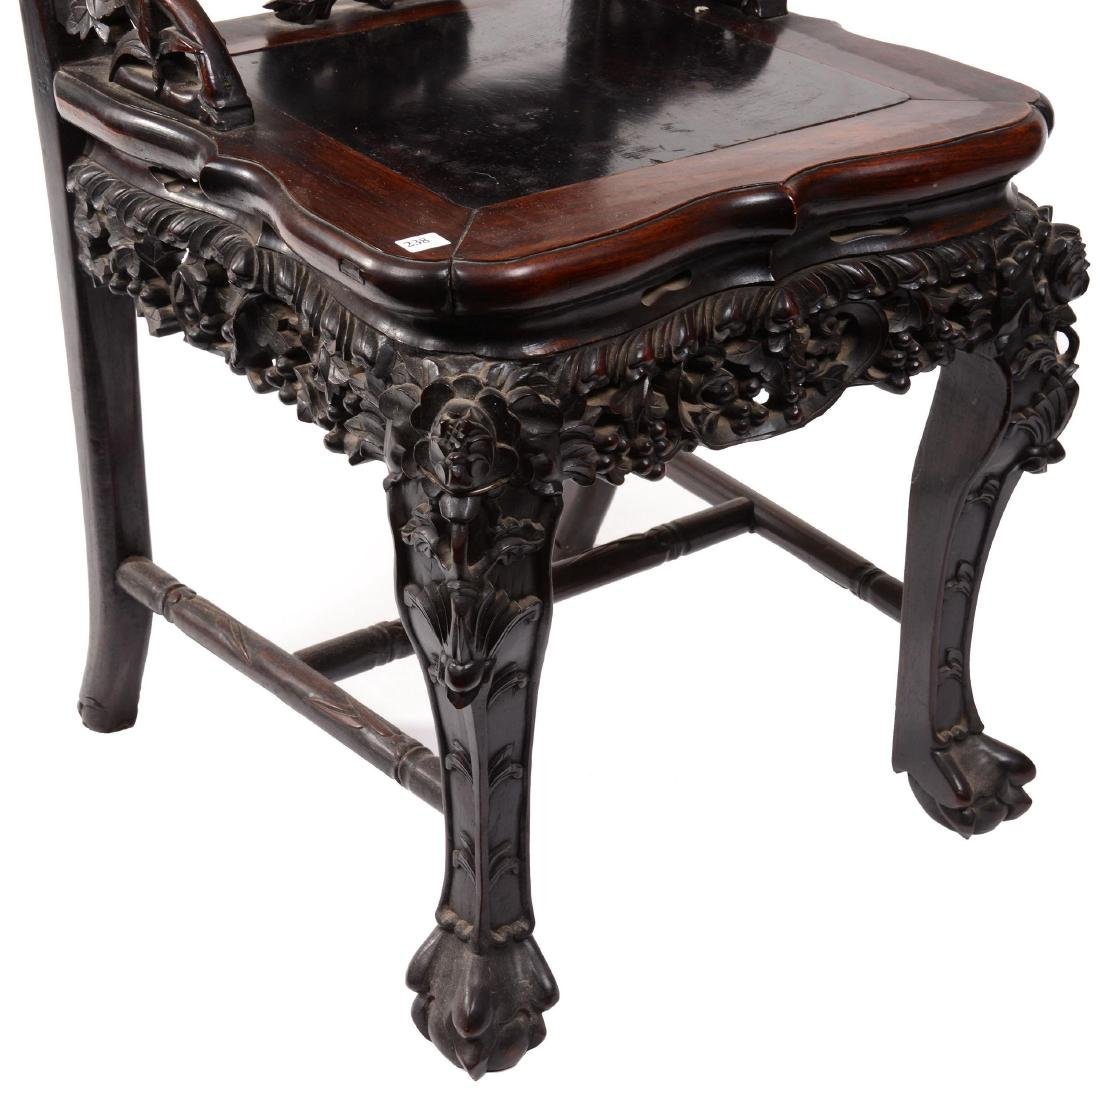 Antique Carved Teakwood Chair - 3